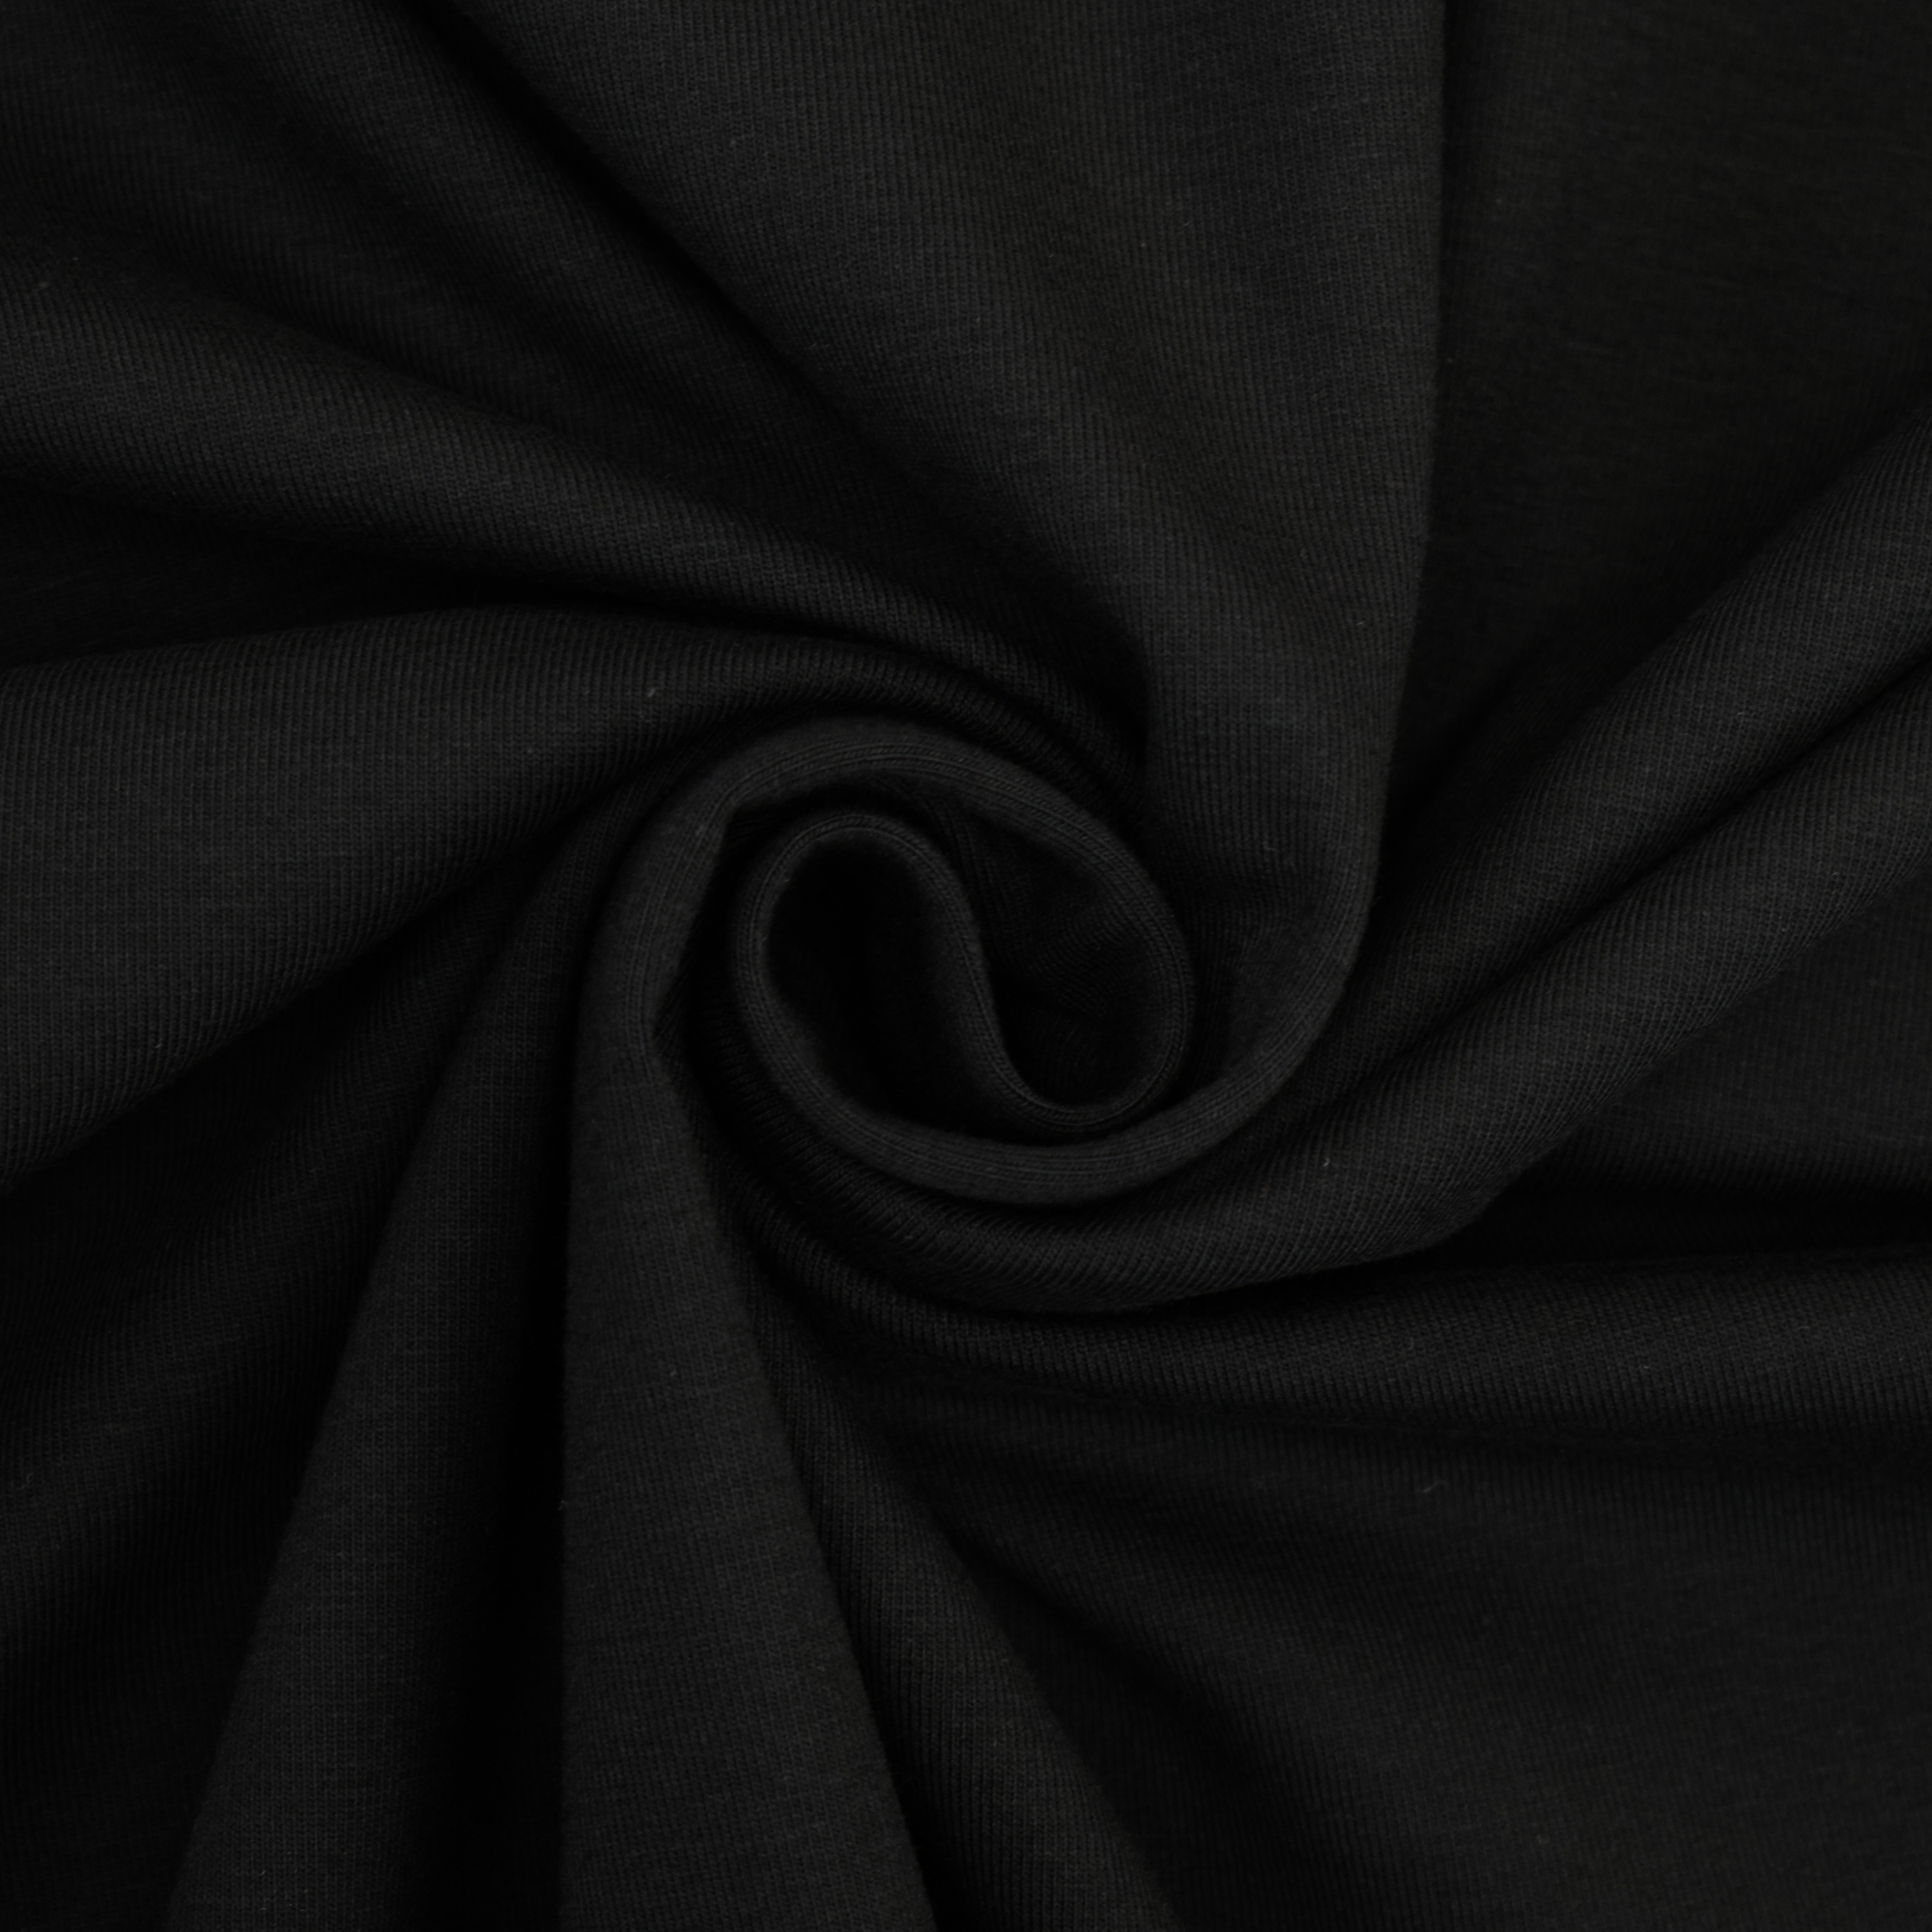 Cotton jersey plain, black | 455.421-1005 | schwarz